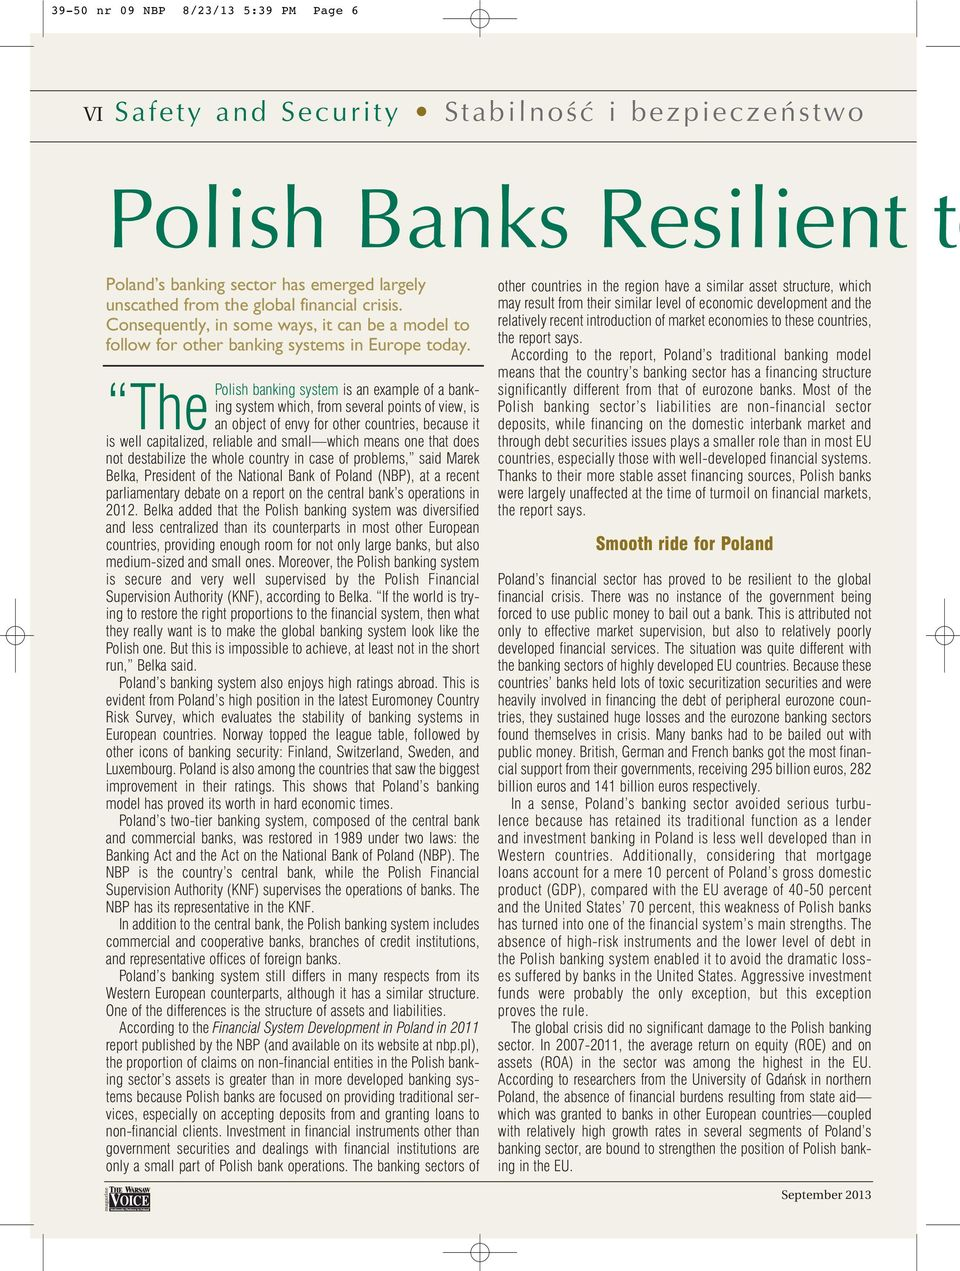 banking system is an example of a banking system which, from several points of view, is ThePolish an object of envy for other countries, because it is well capitalized, reliable and small which means